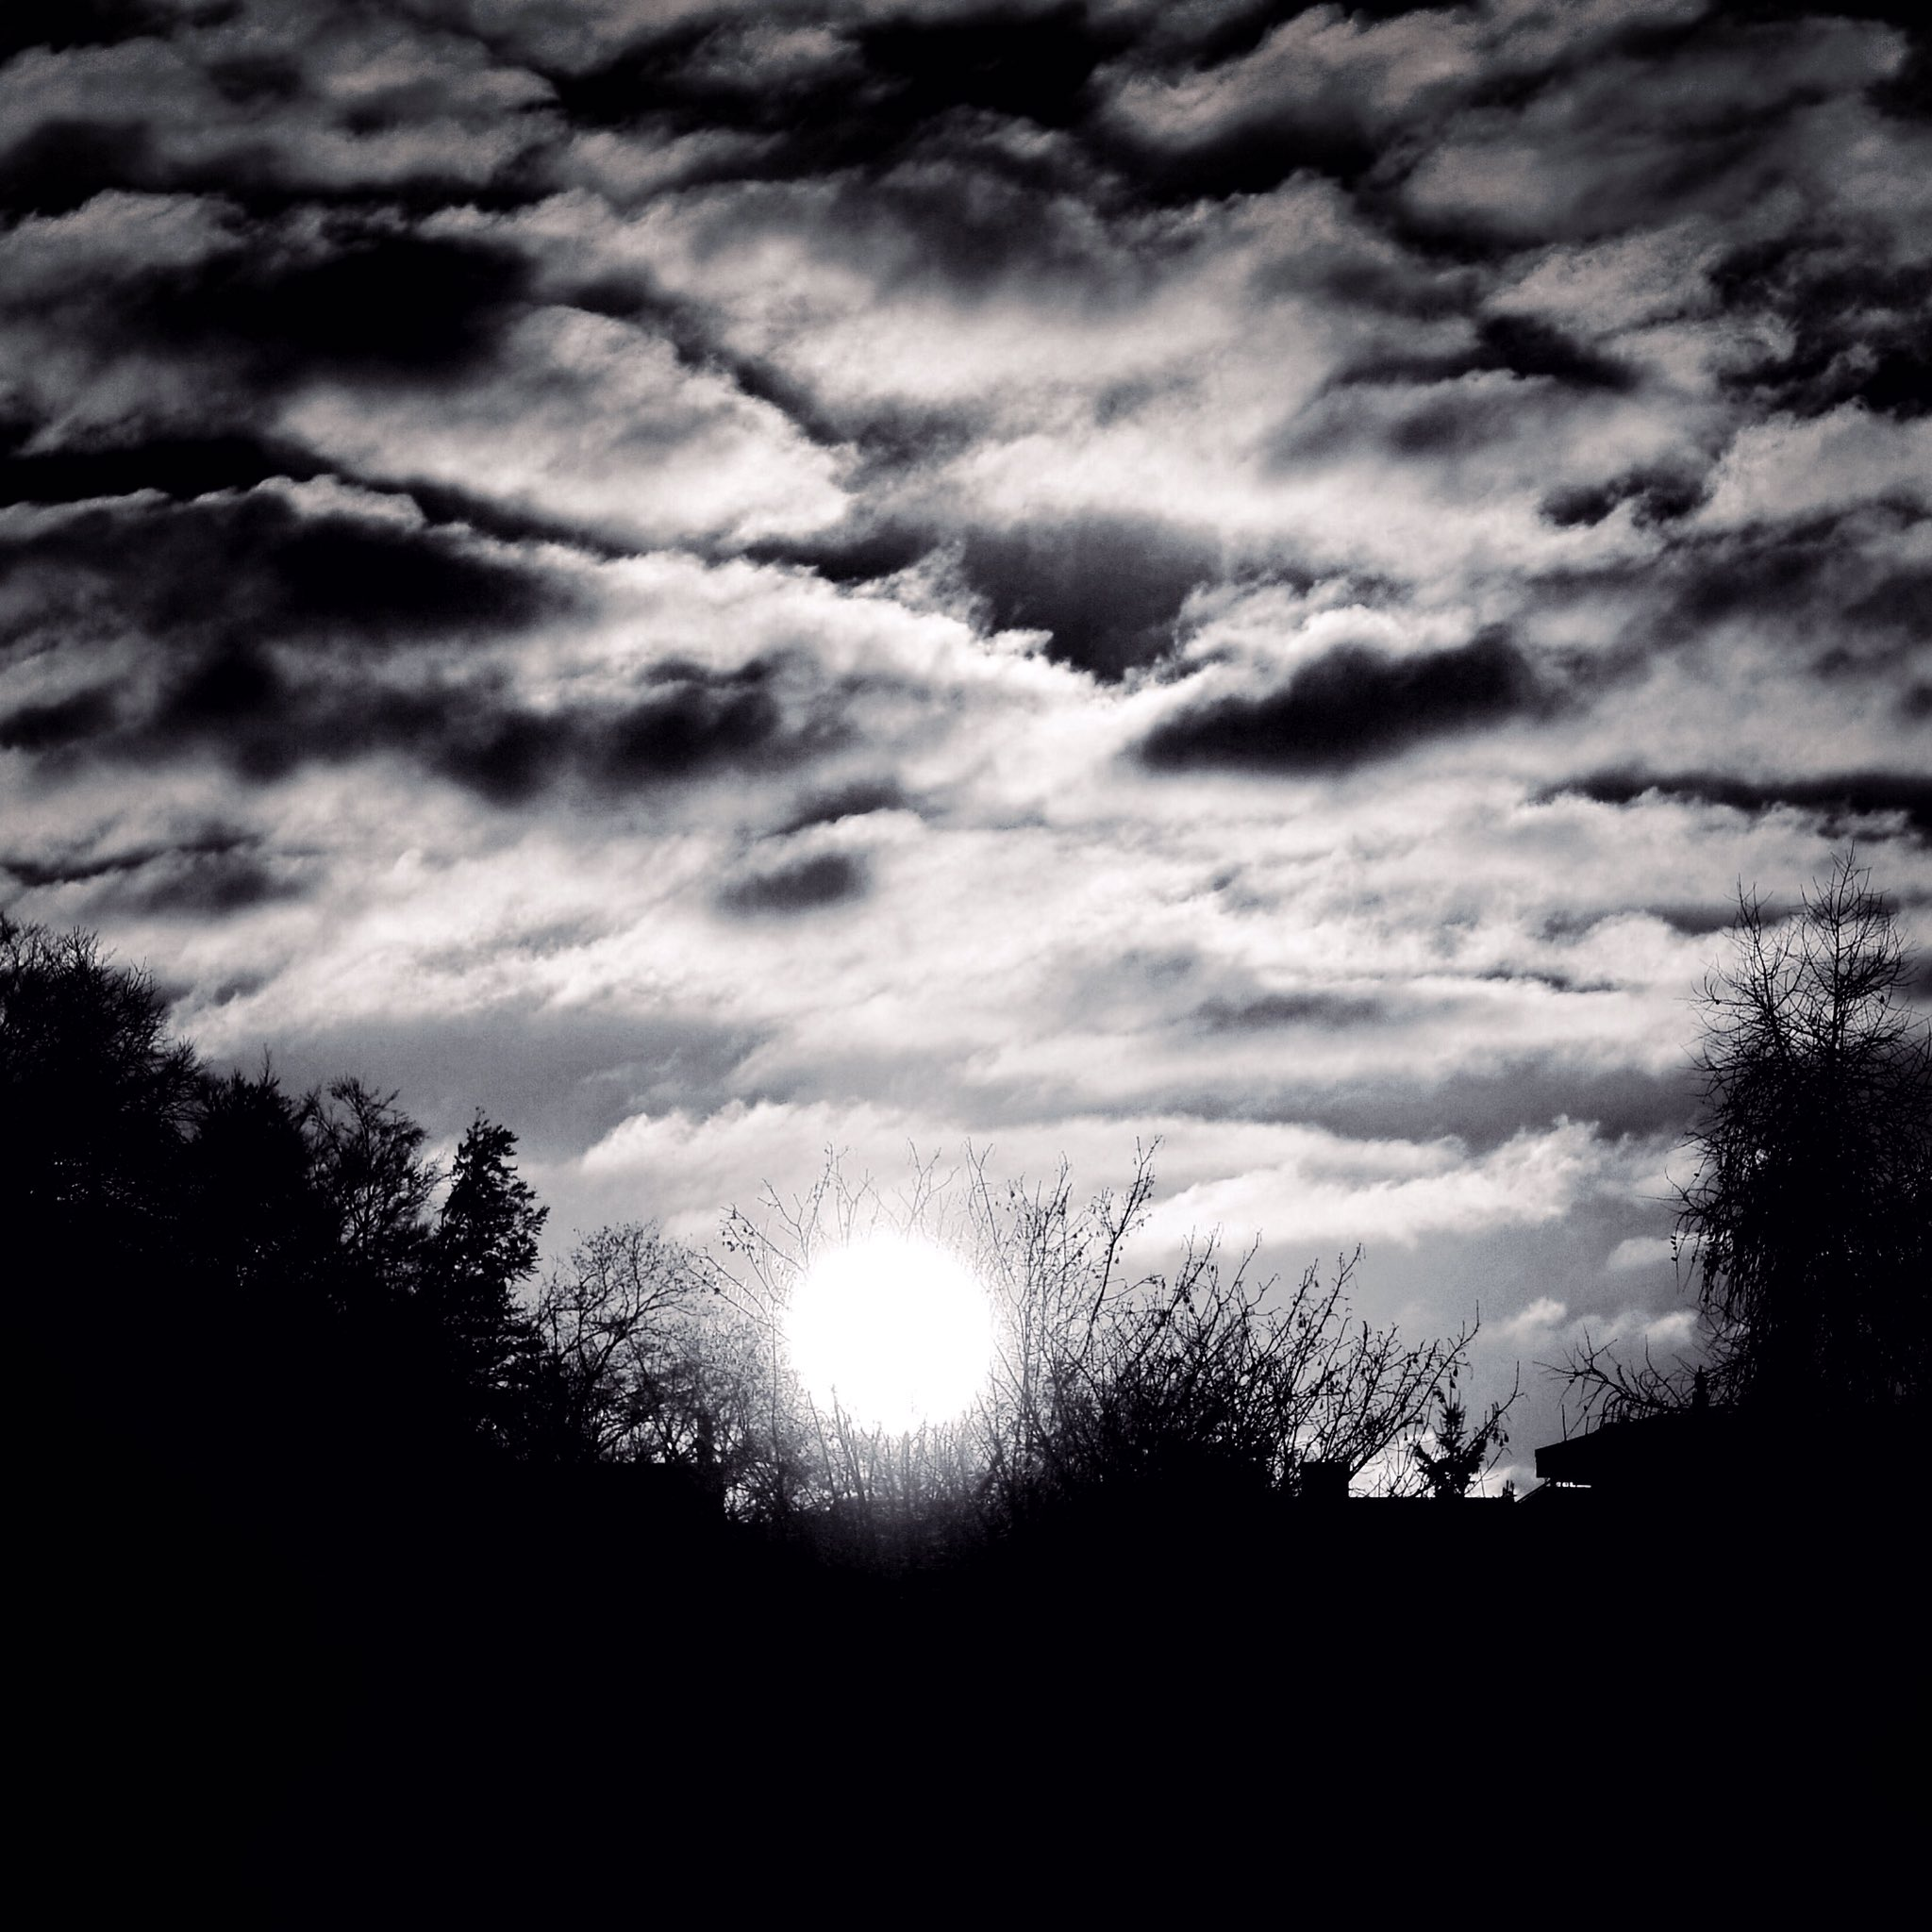 black_and_white_landscape_photography_1.jpg